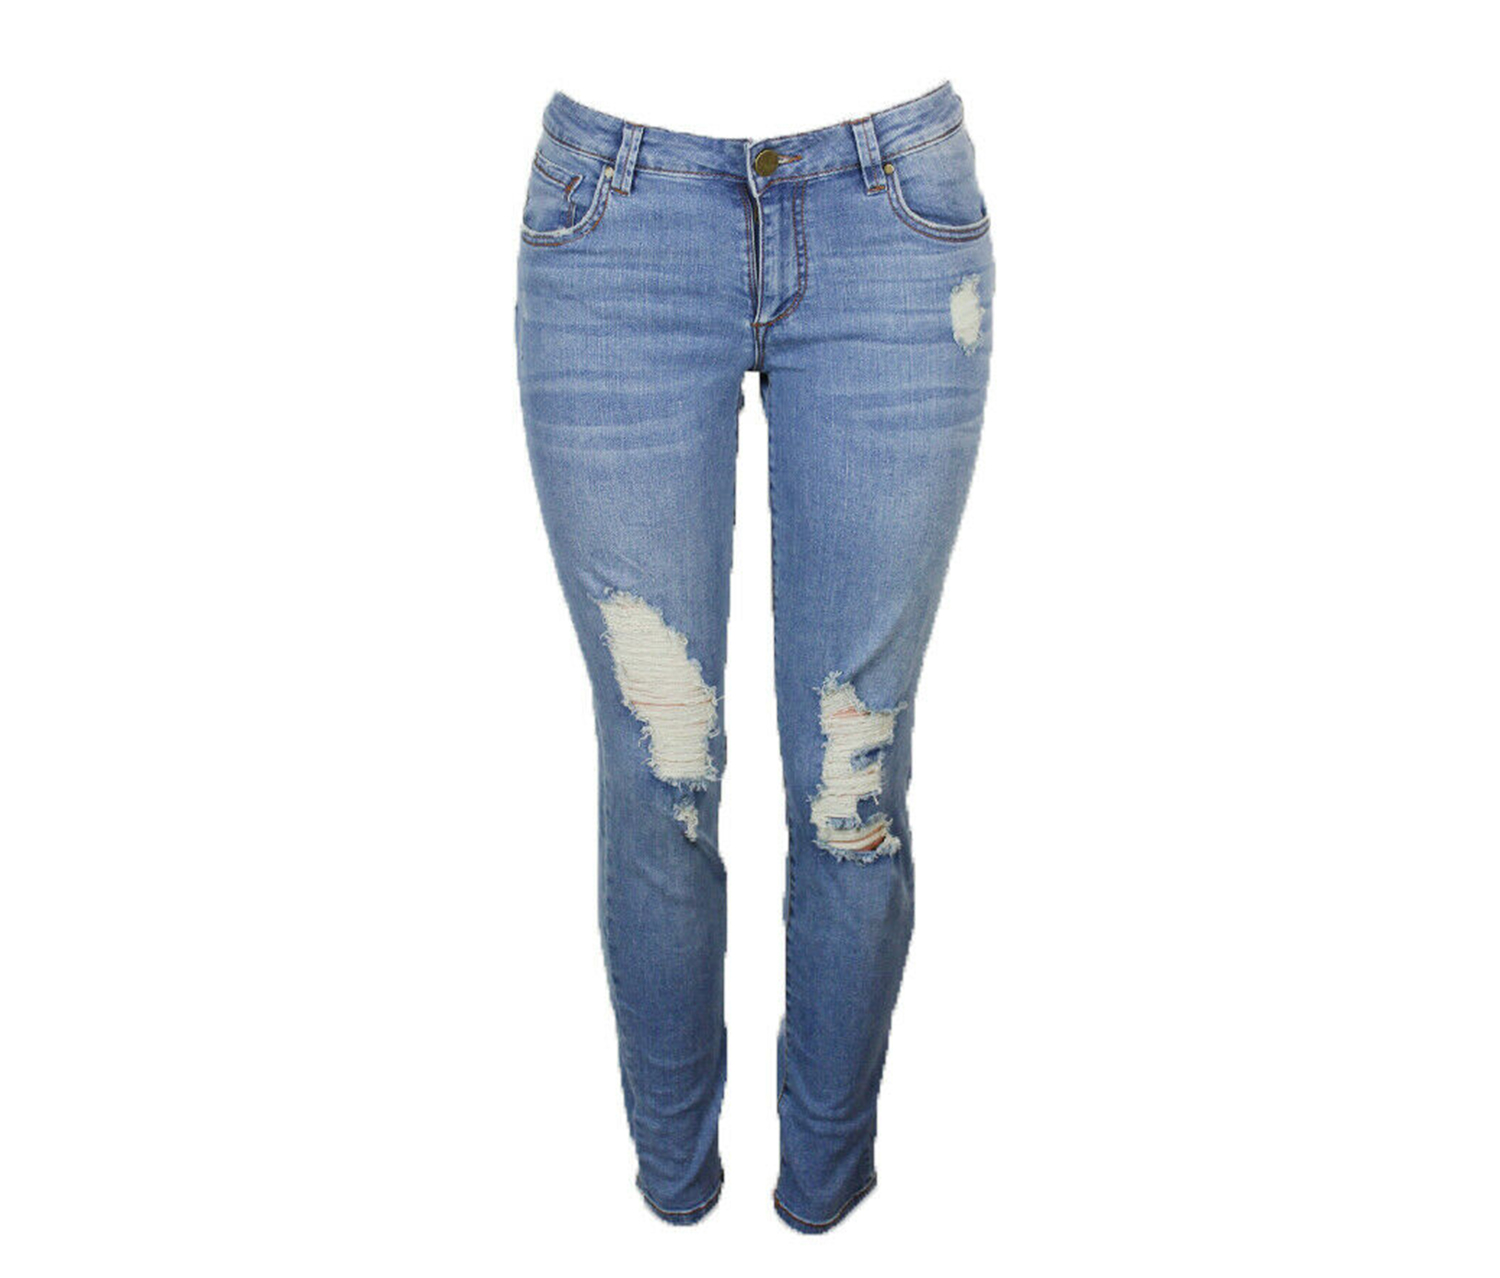 Women's Ripped Straight Leg Girlfriend Jeans, Blue